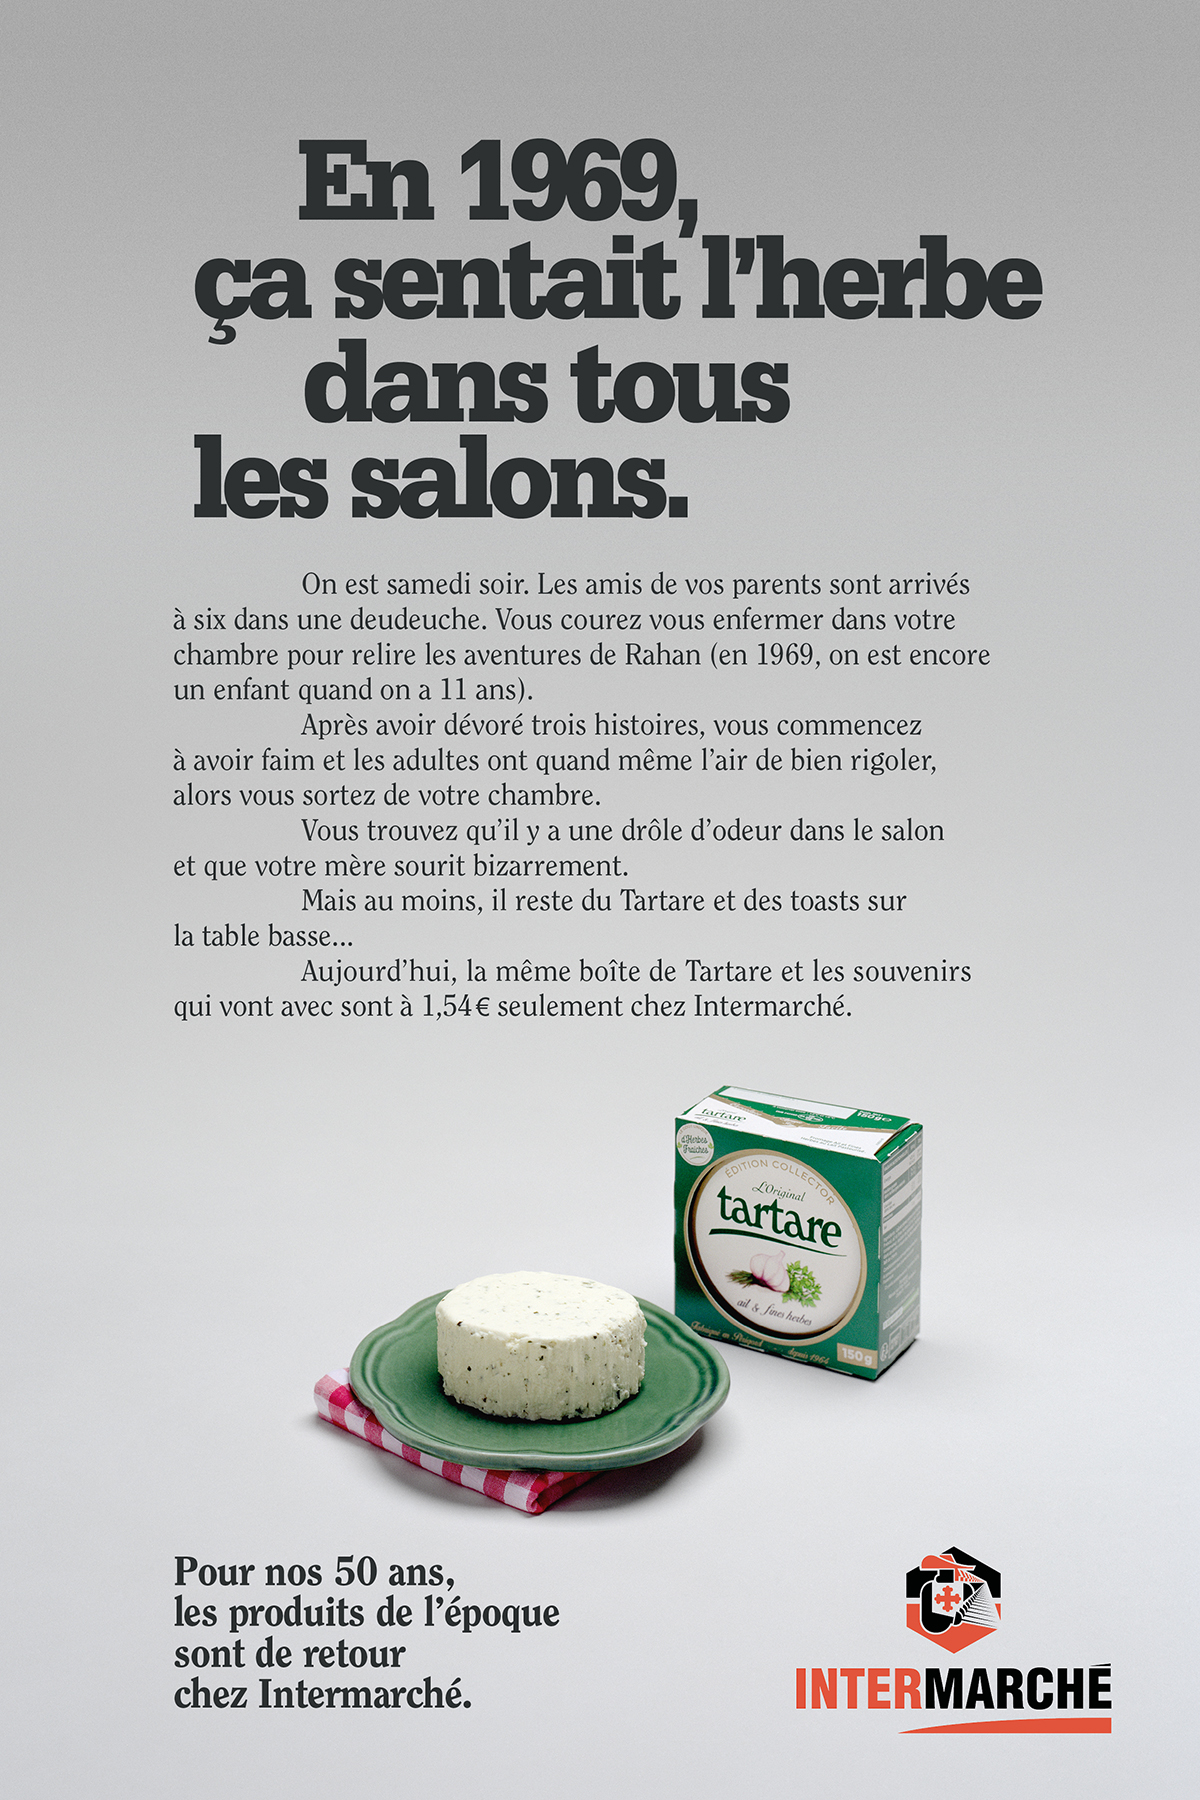 intermarche-50-ans-tf1-evelyne-leclercq-agence-romance-tartare-fromage-packaging-1960-1970